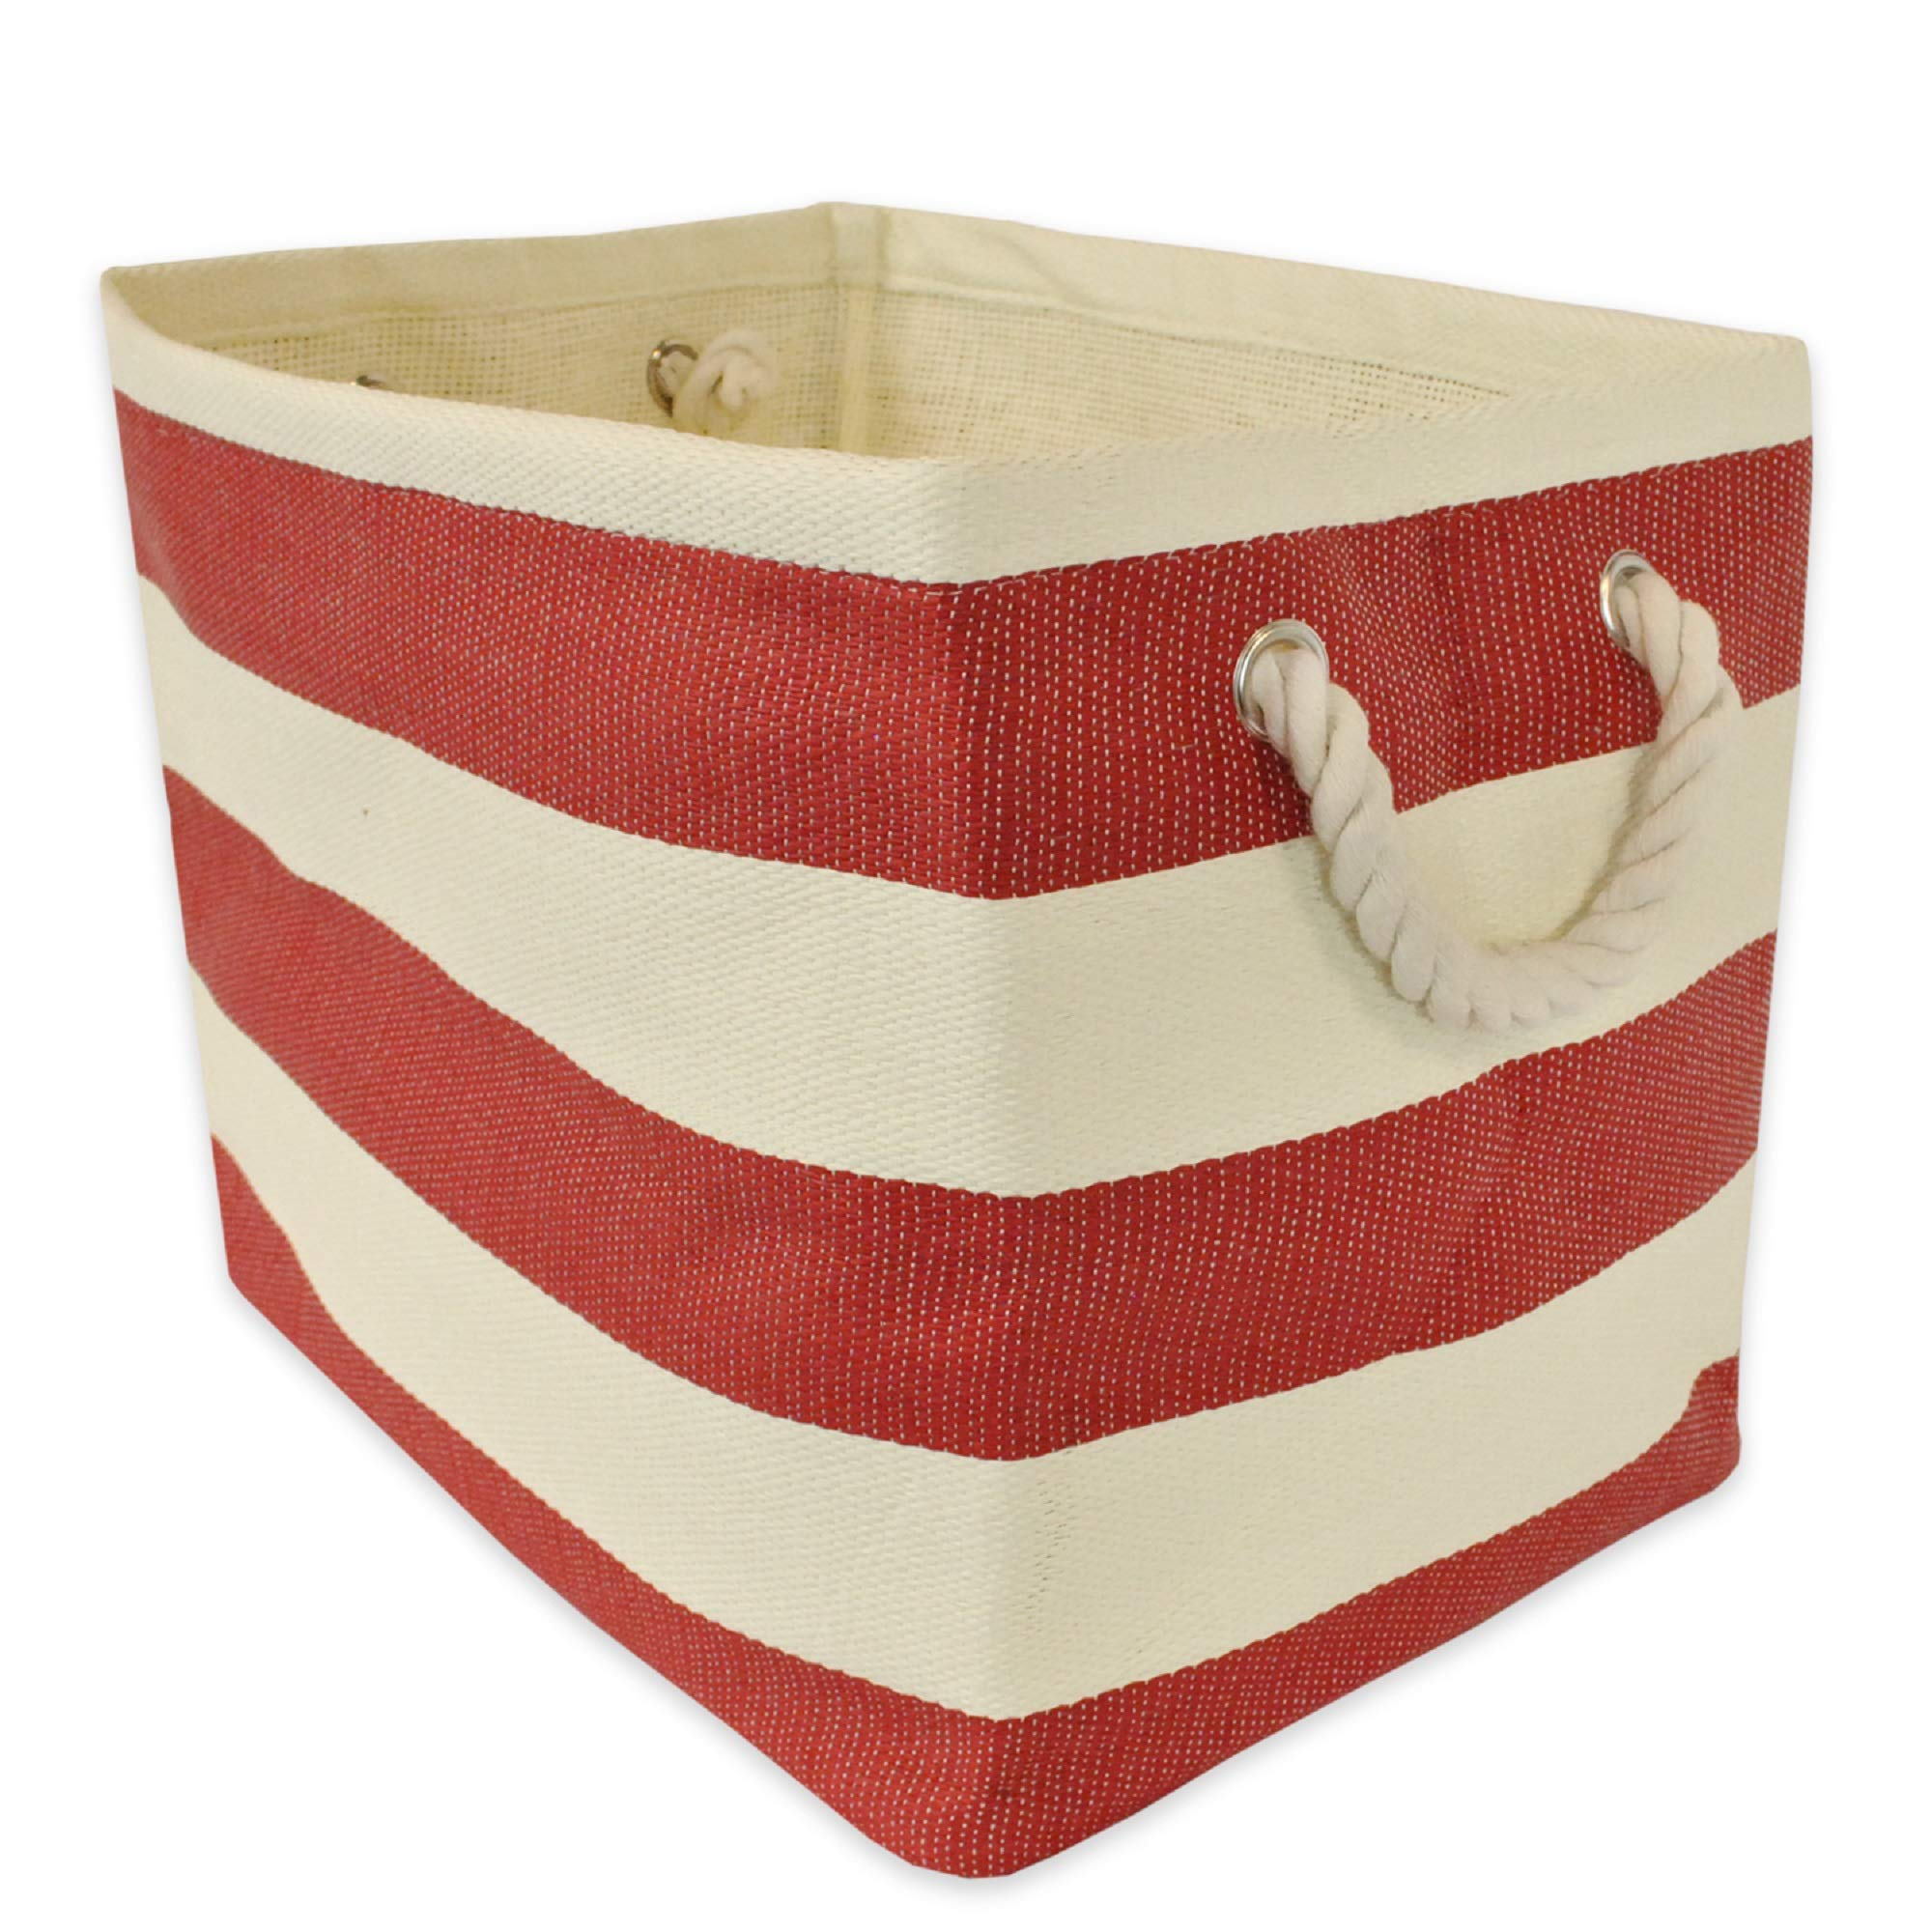 CC Home Furnishings 17'' Red and Ivory Striped Pattern Rectangular Large Size Paper Basket by CC Home Furnishings